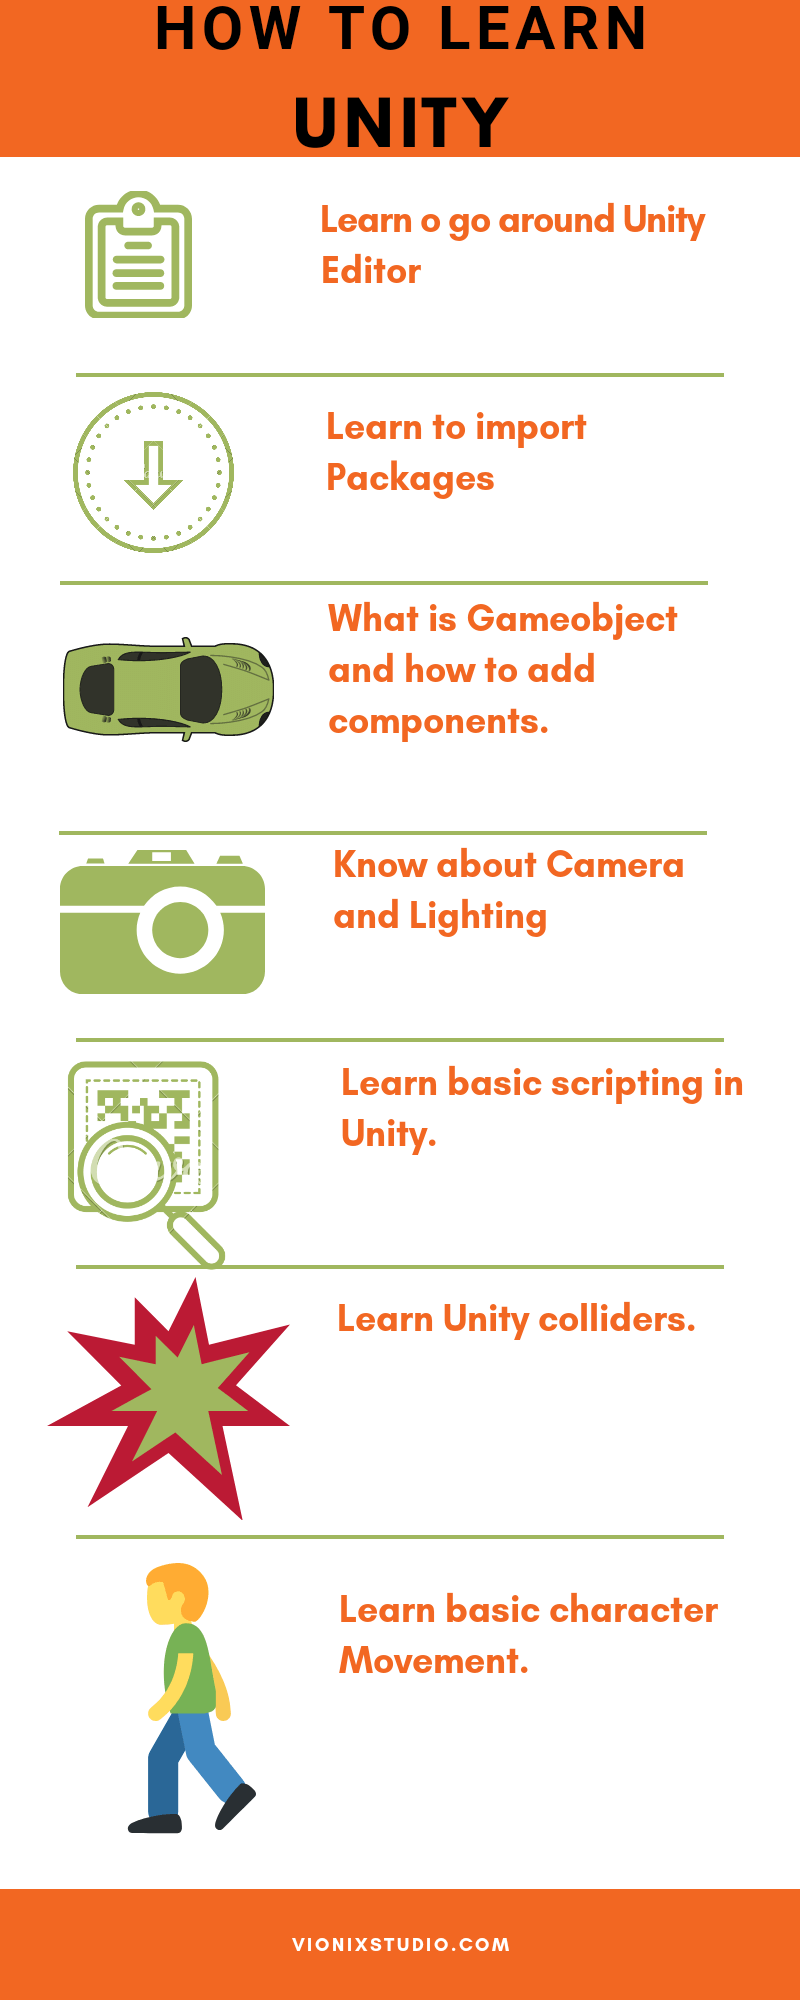 How to learn Unity